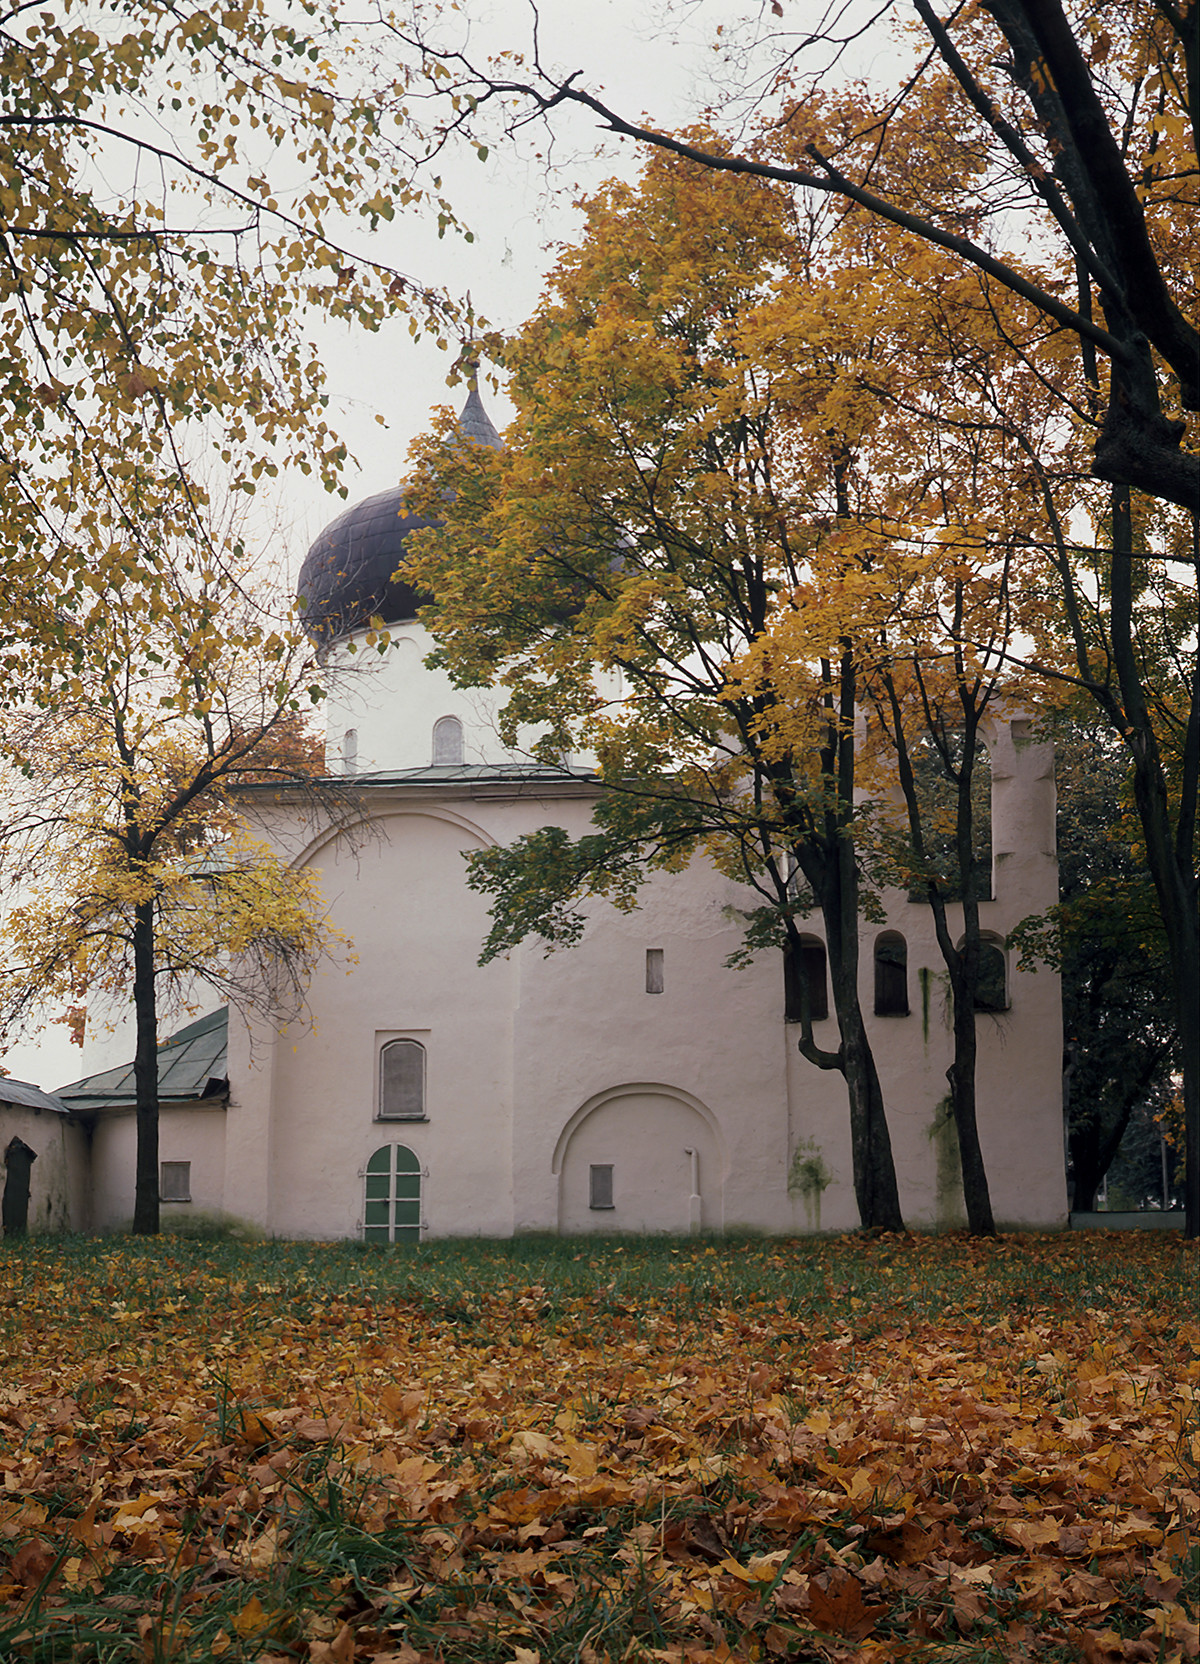 Cathedral of the Transfiguration of the Savior in the Mirozhsky Monastery